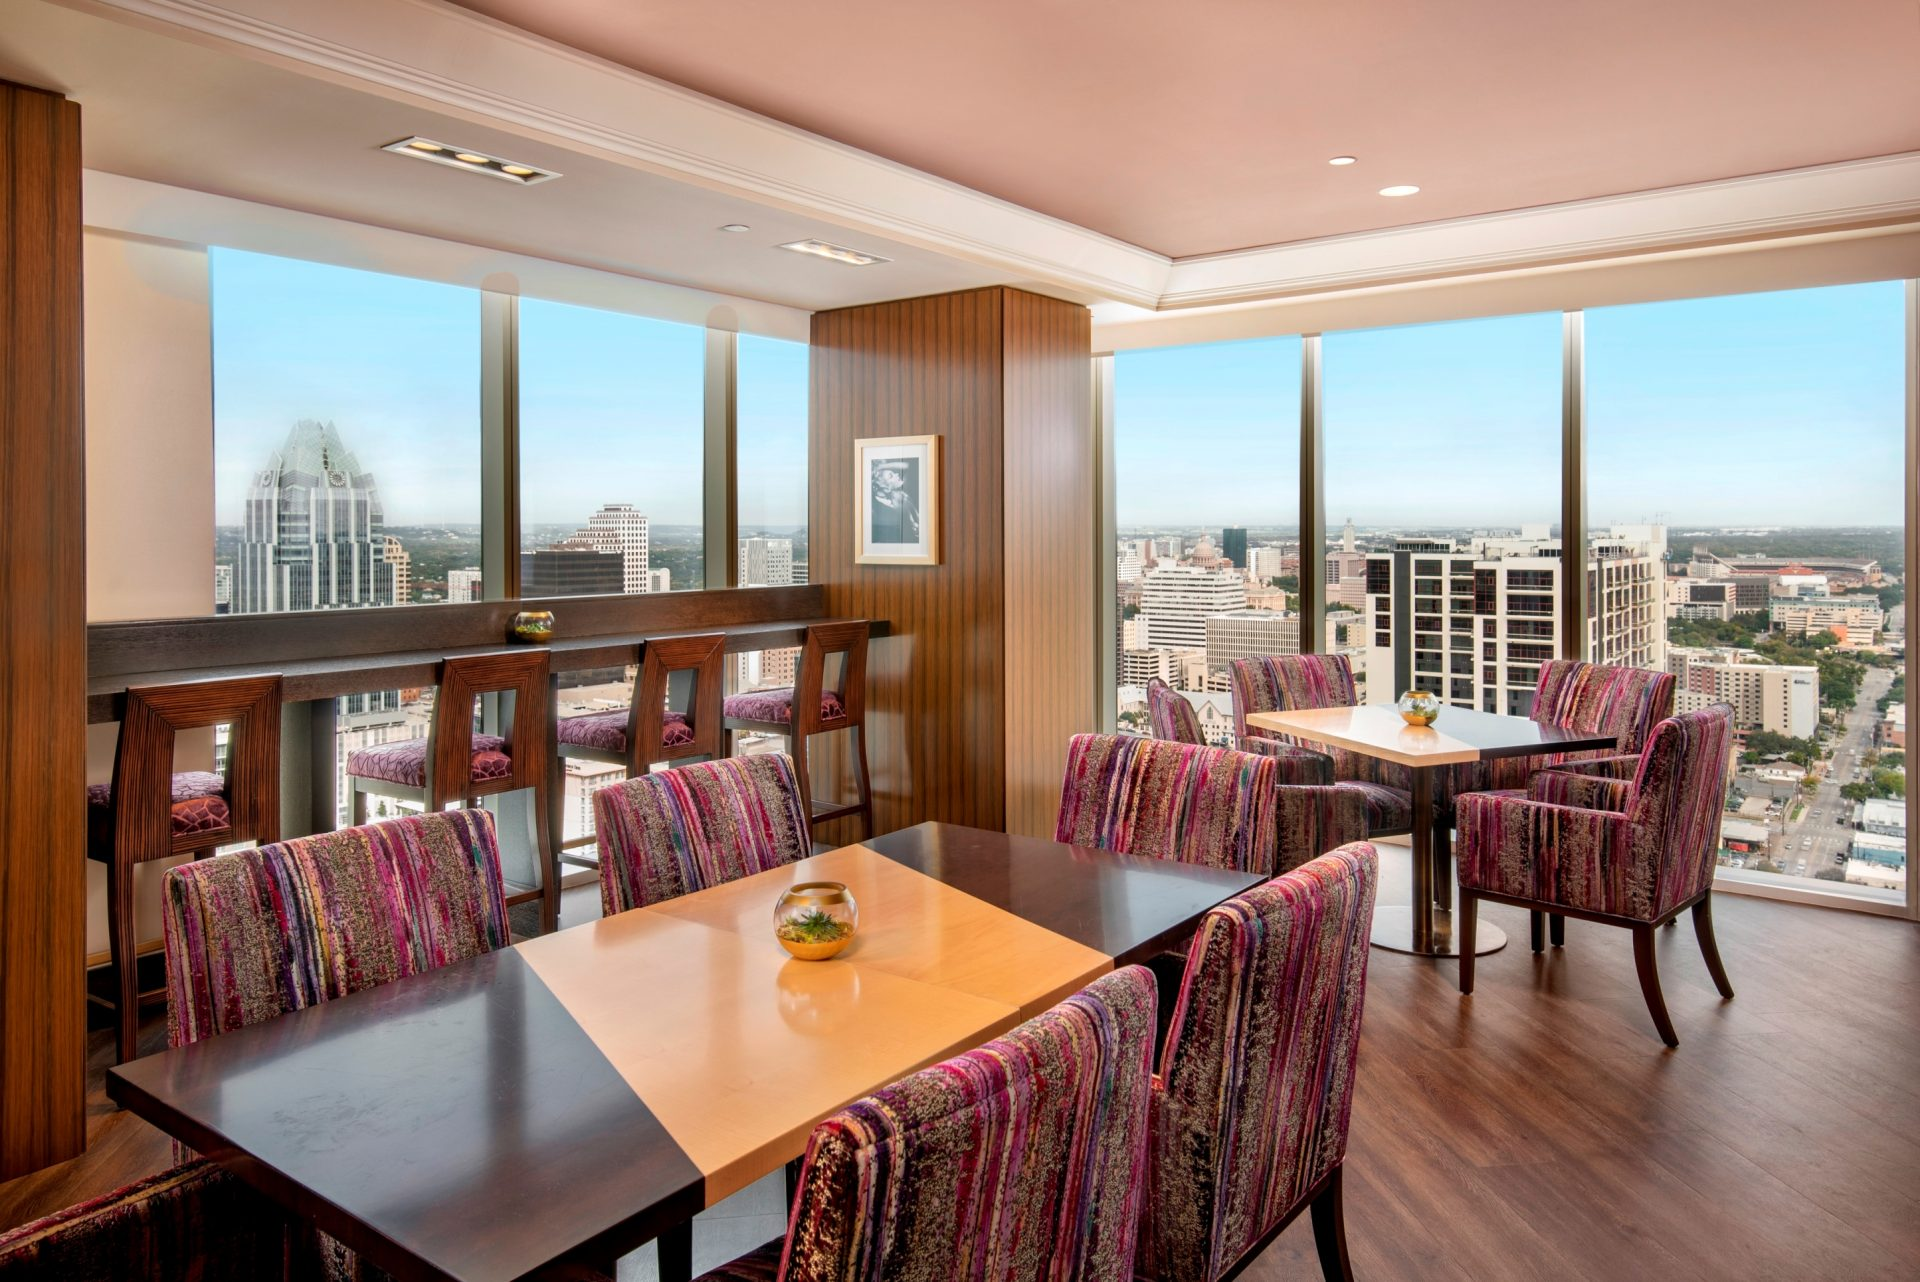 Luxurious lounge with Groups of 4 tables and 4 stools and bar along window featuring amazing city views